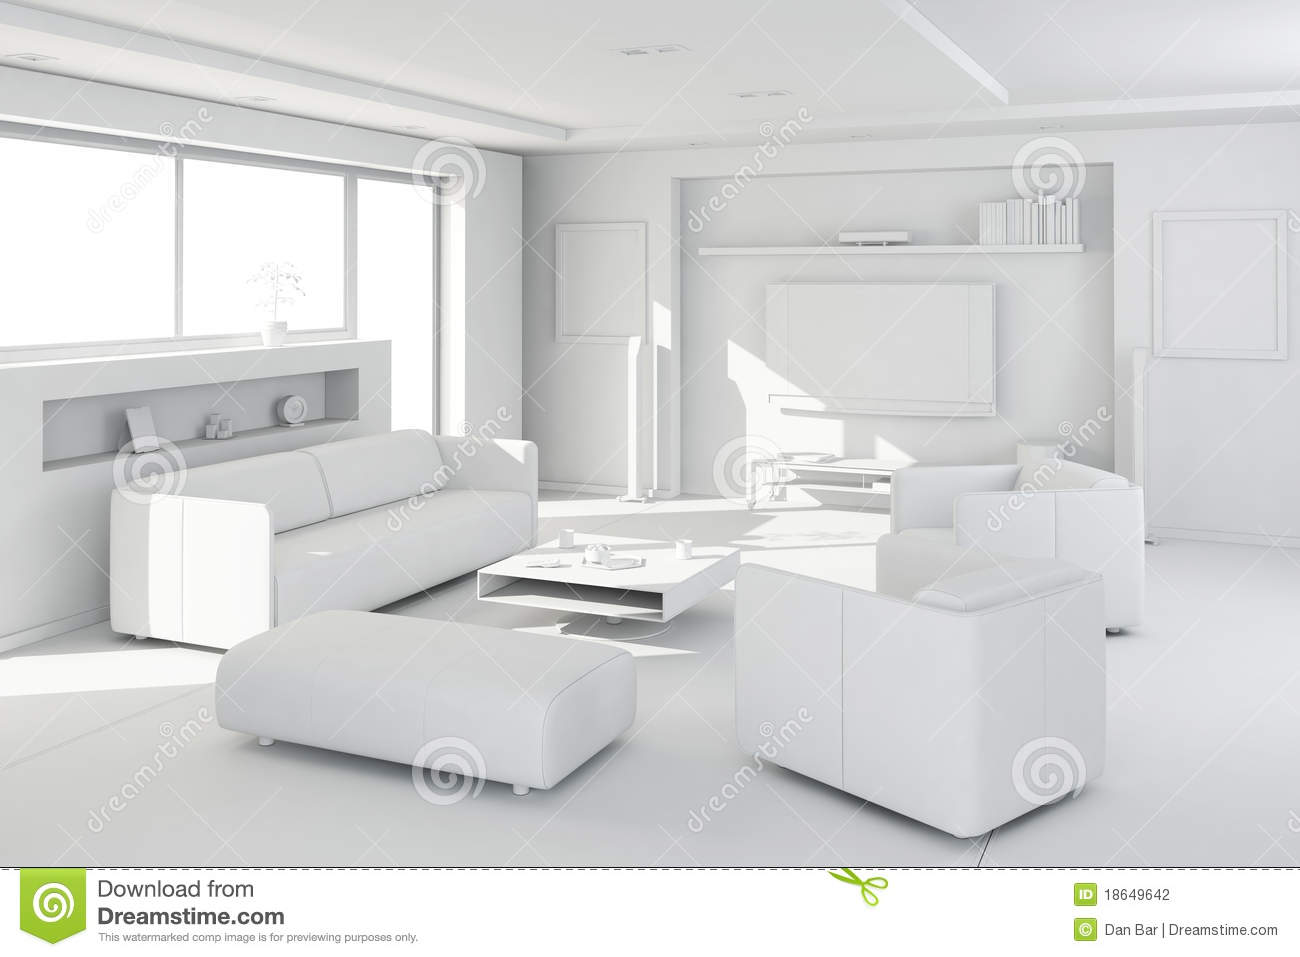 3d clay render of a modern interior stock illustration Clean modern interior design